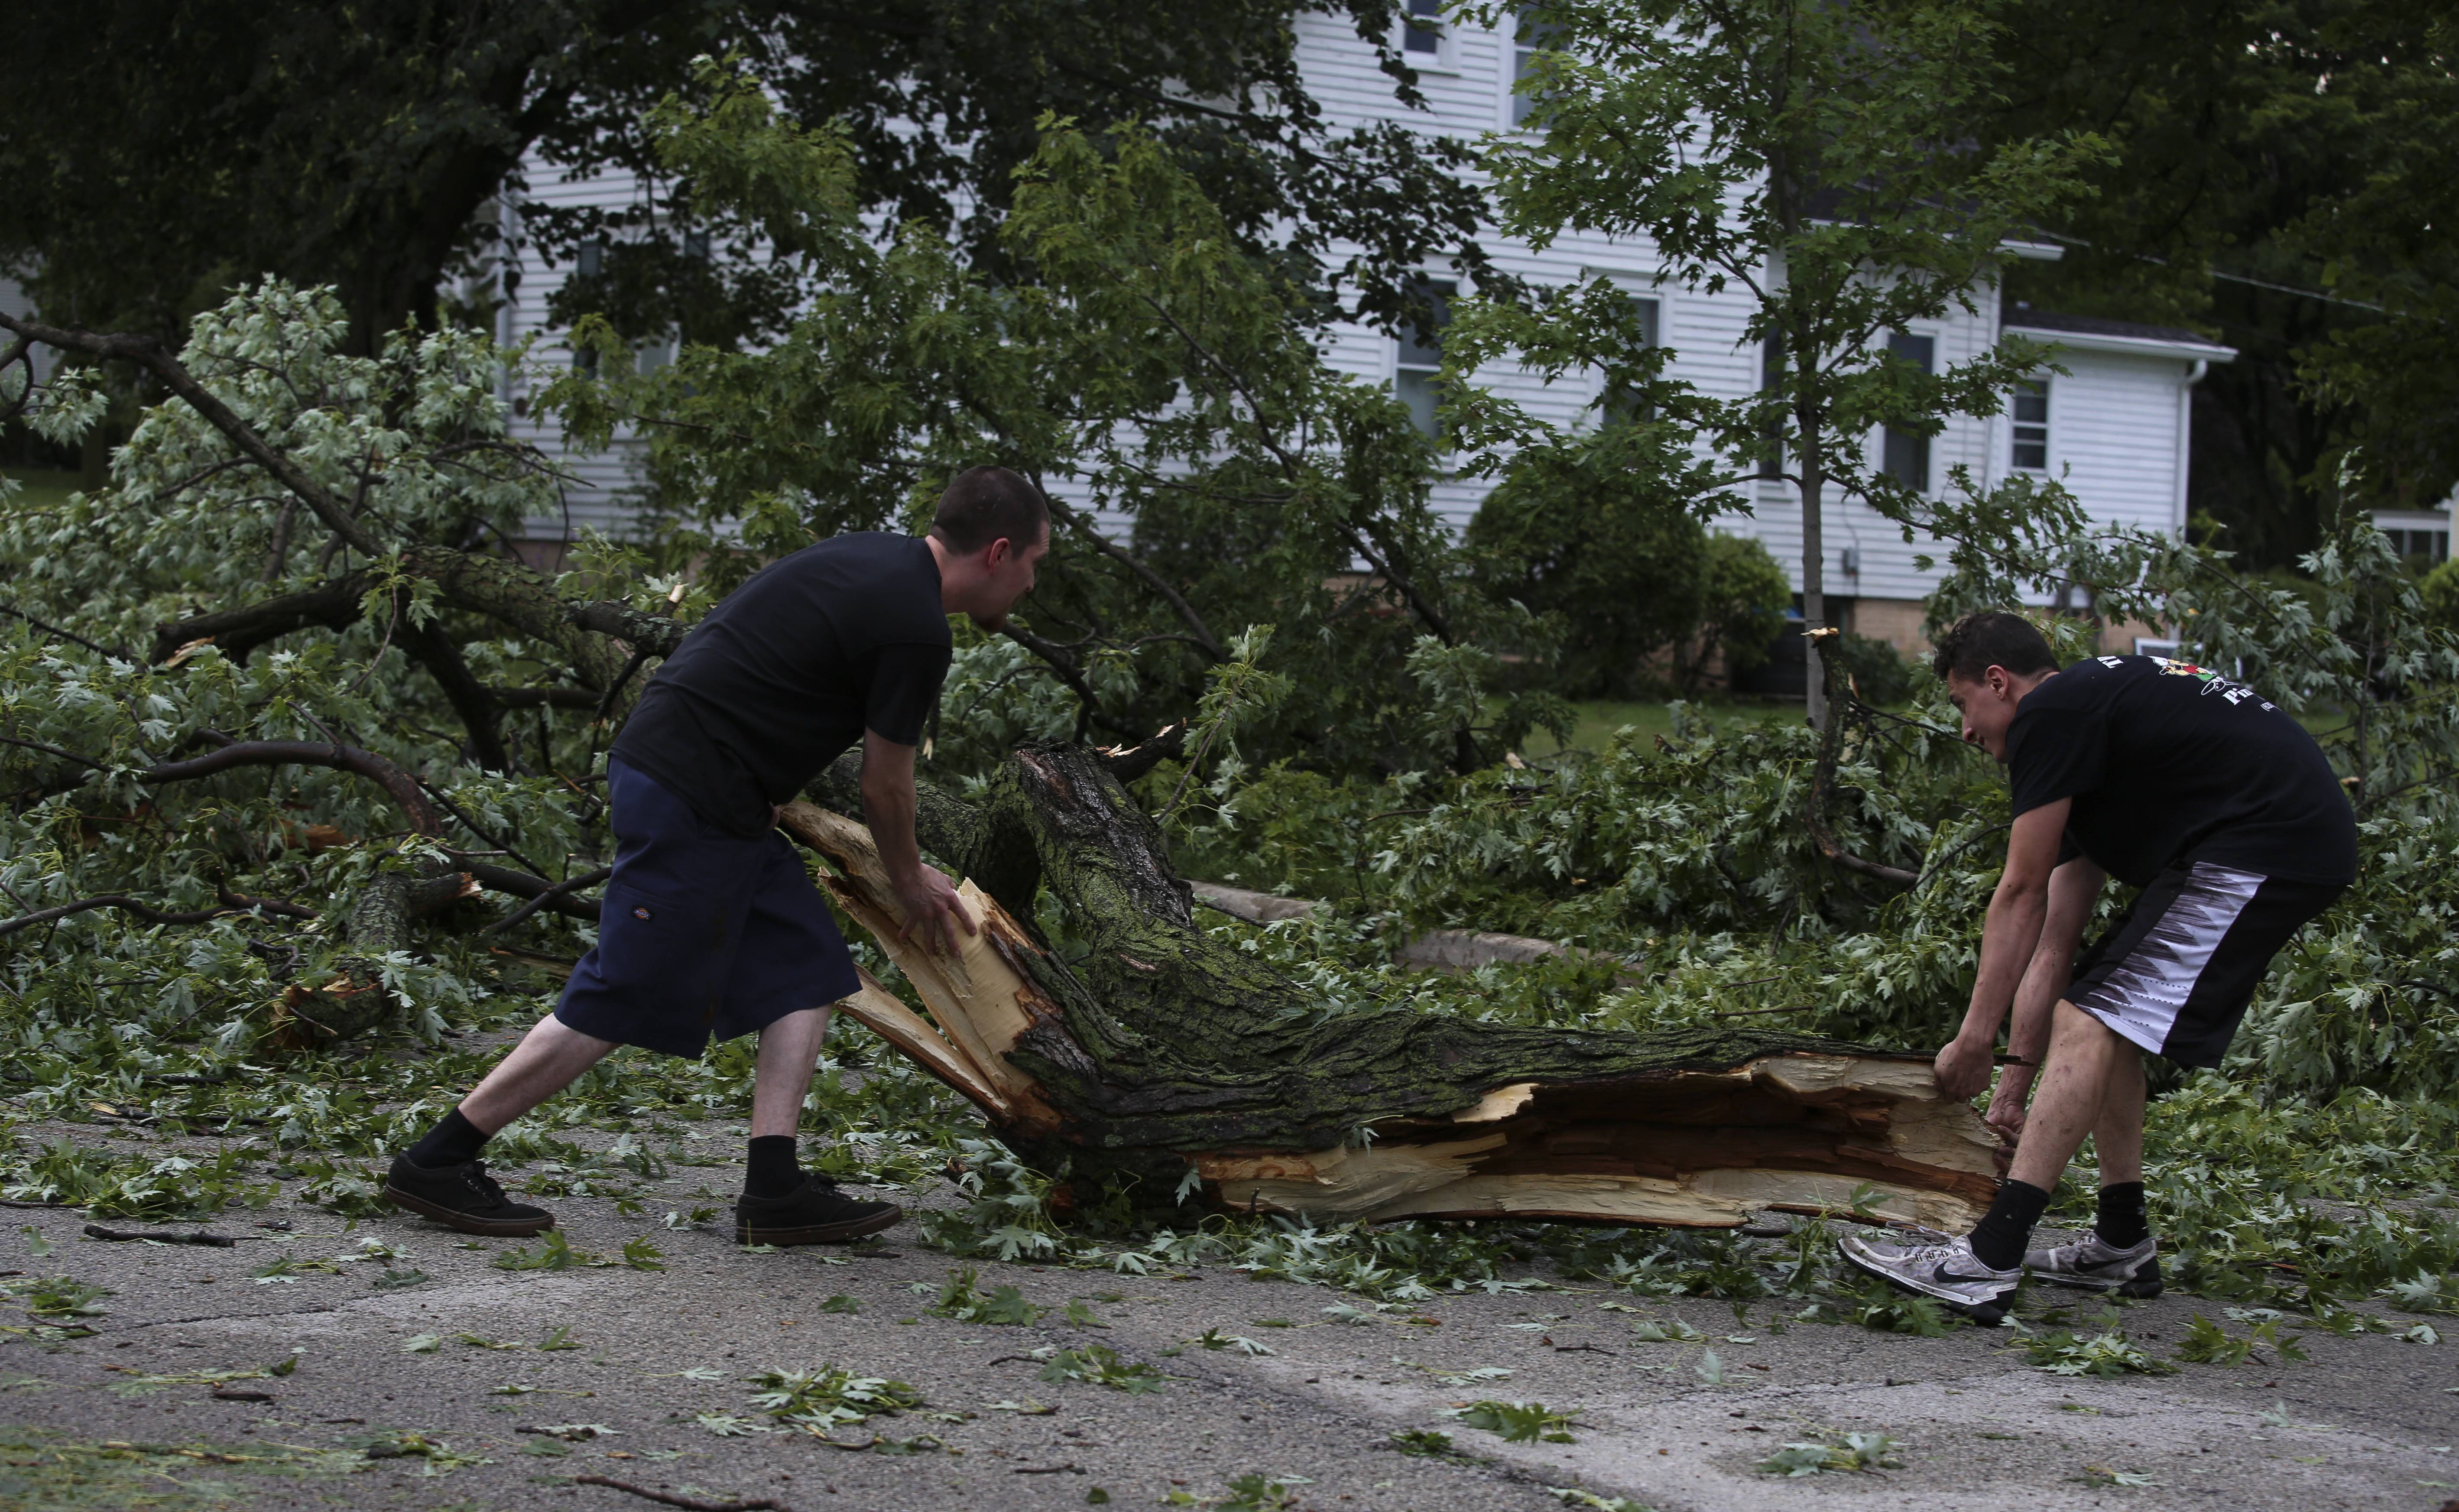 Storms rake suburbs, down power lines